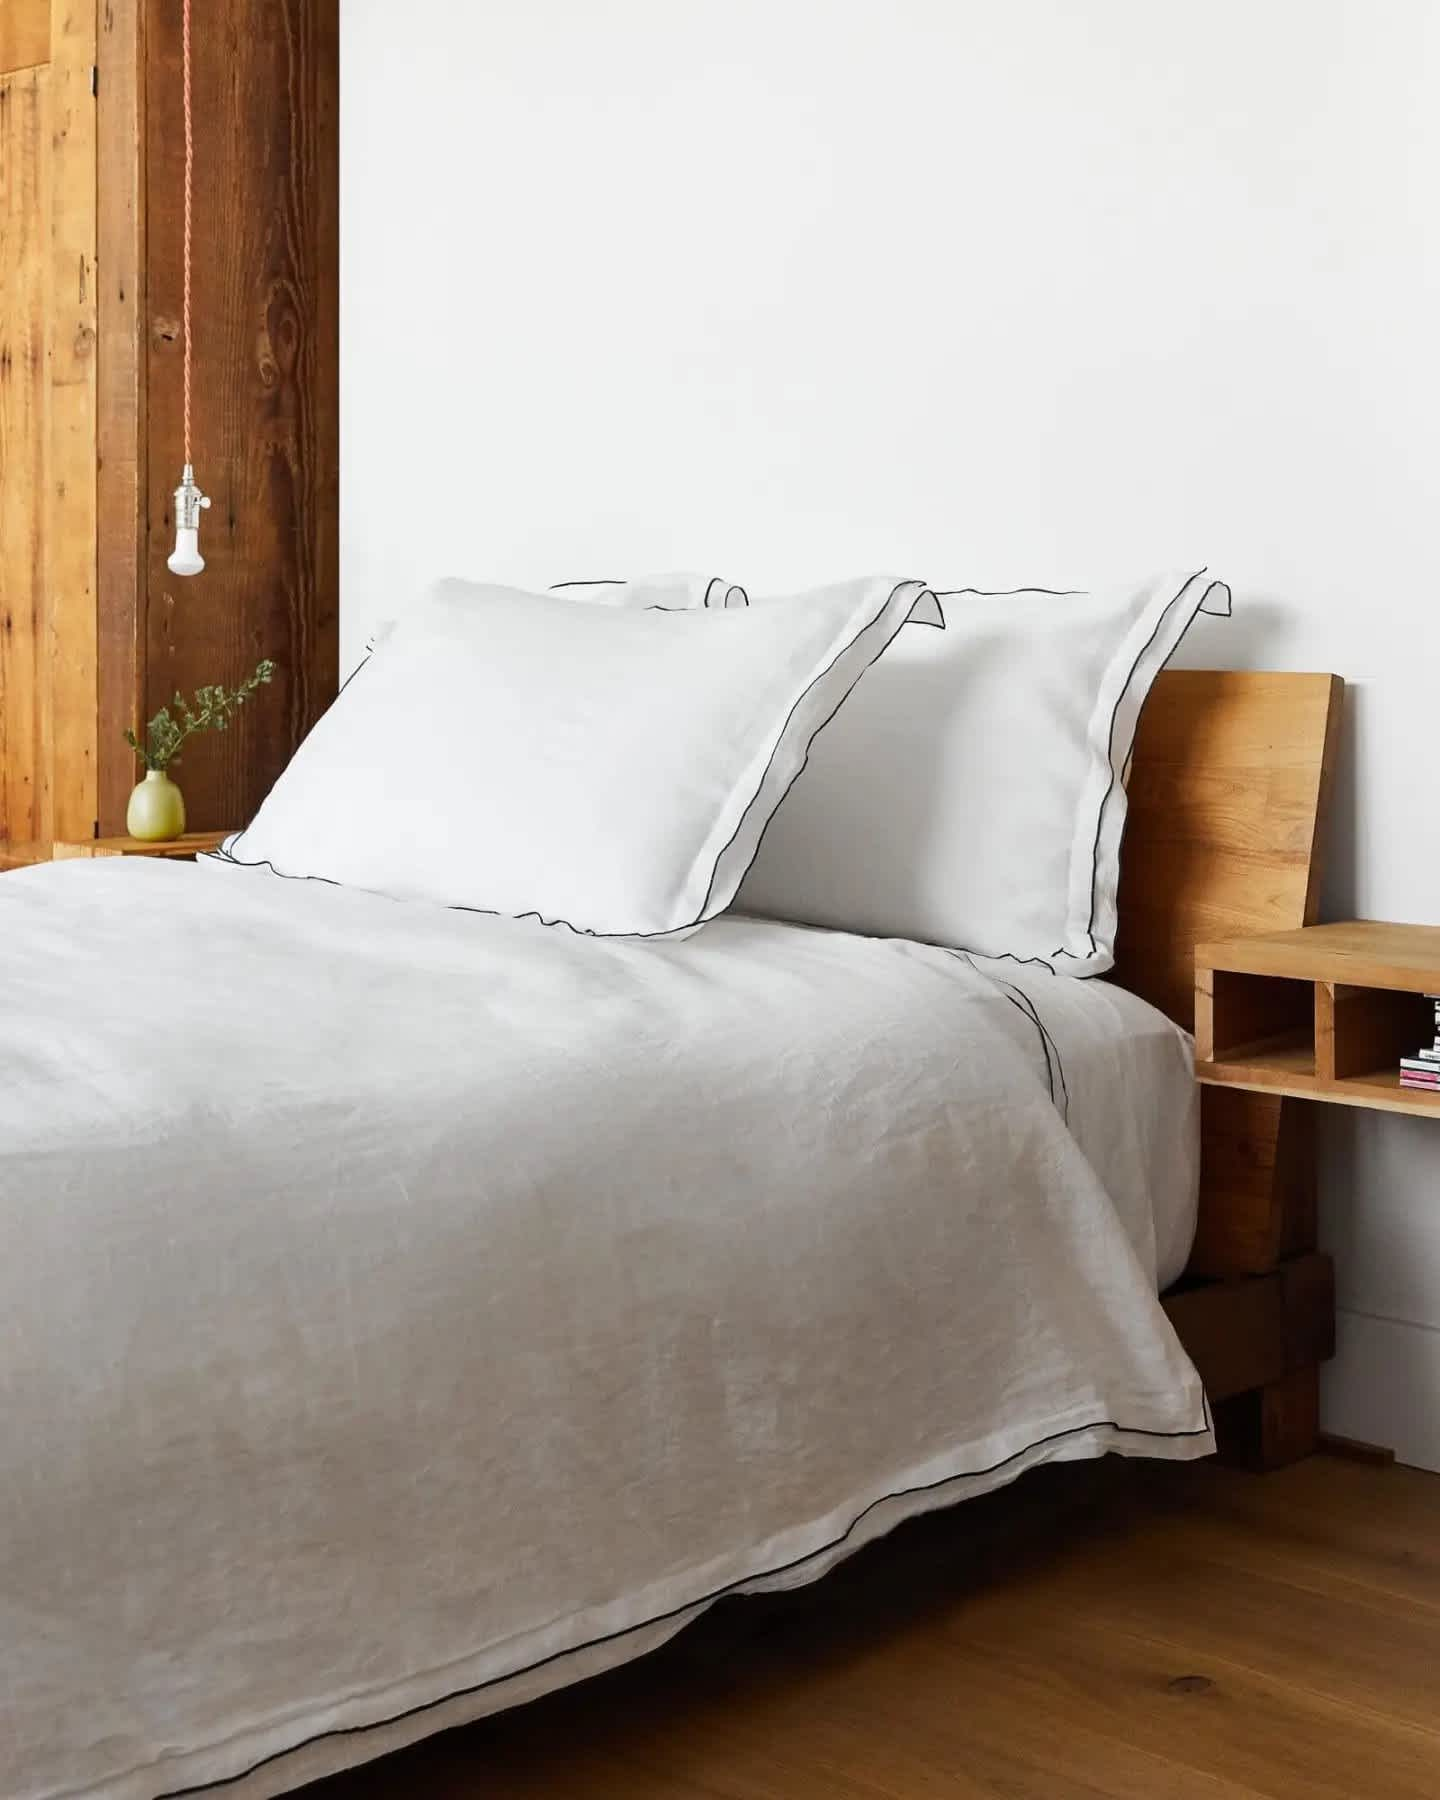 Belgian Linen Double Edge Embroidery Duvet Cover Set - undefined - 3